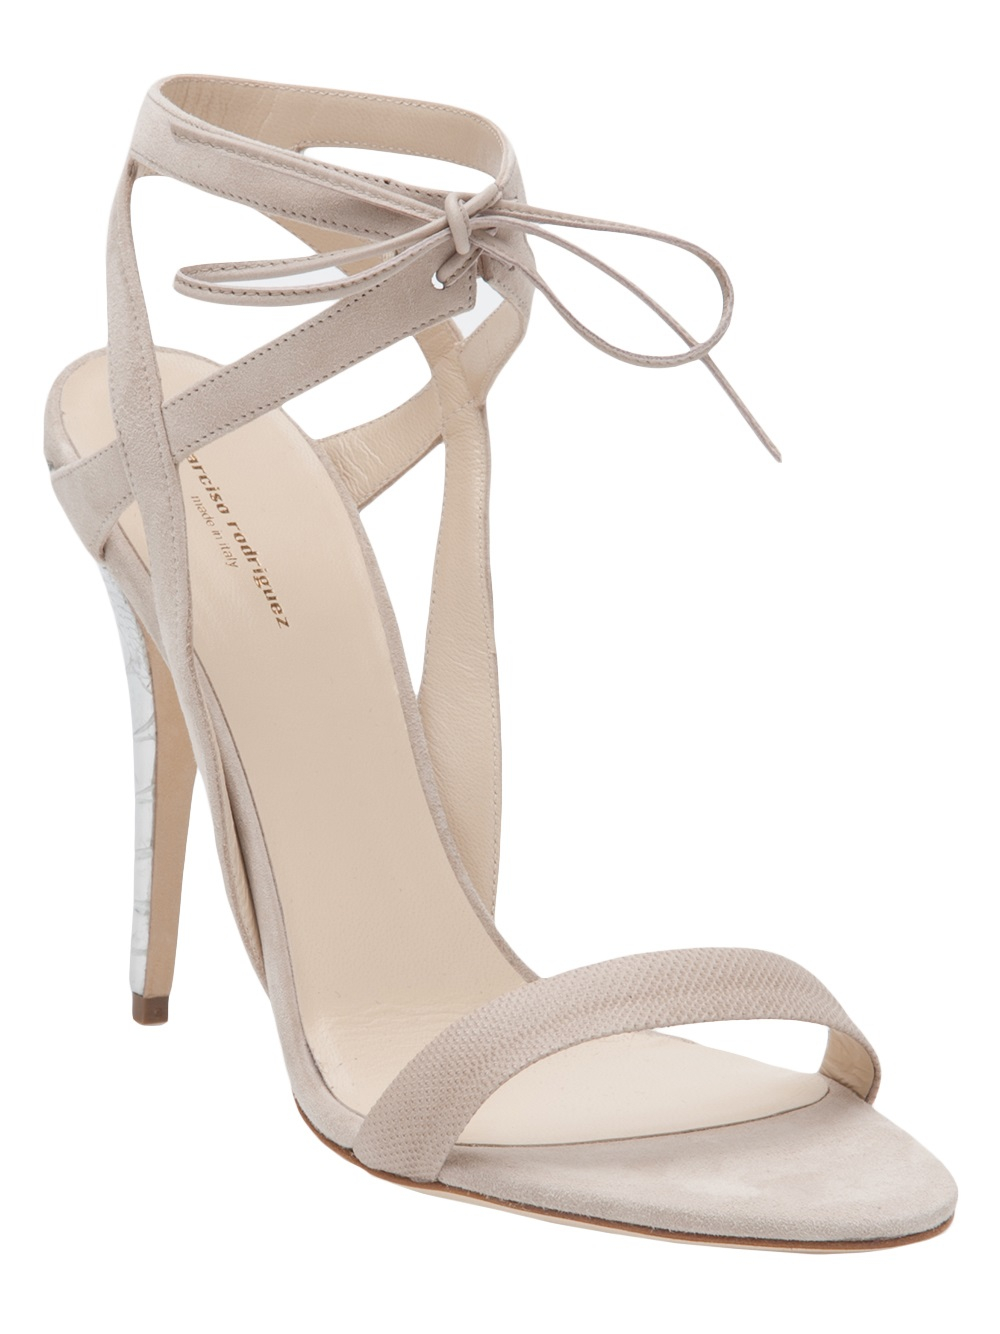 a55bcb999f9 Lyst - Narciso Rodriguez Ankle Tie Sandal in White